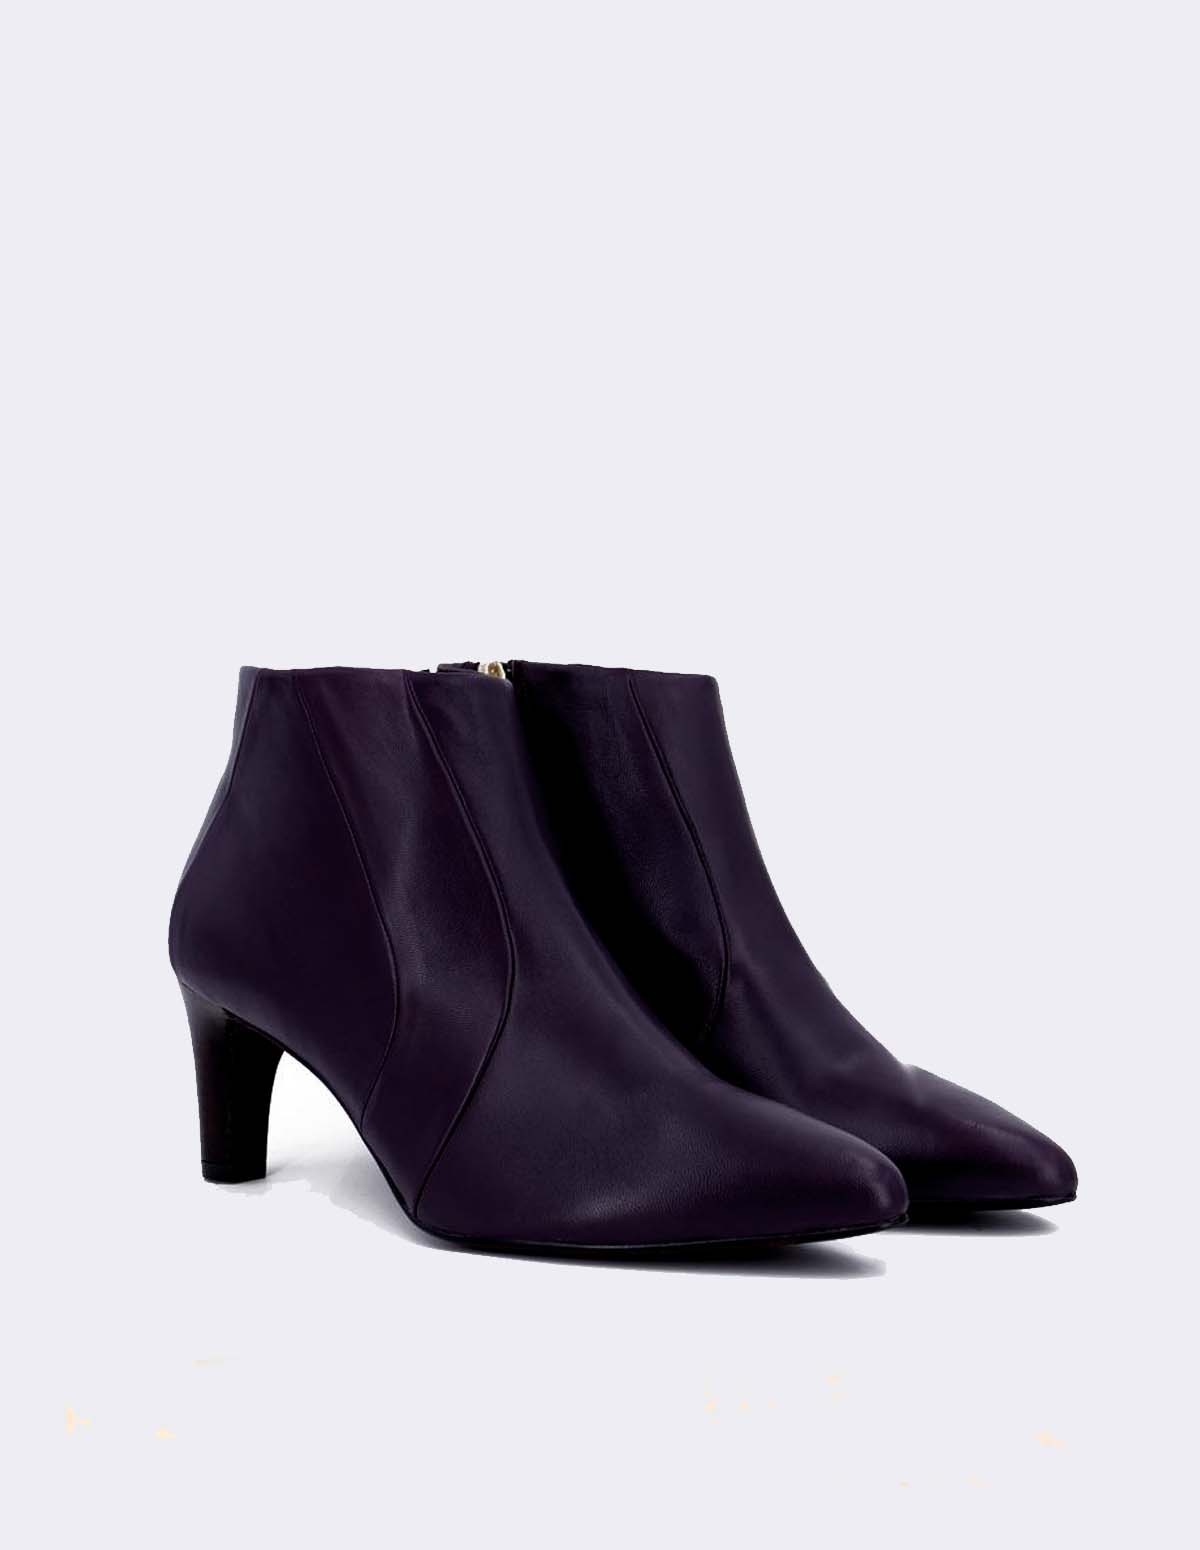 Ag Isis Boots